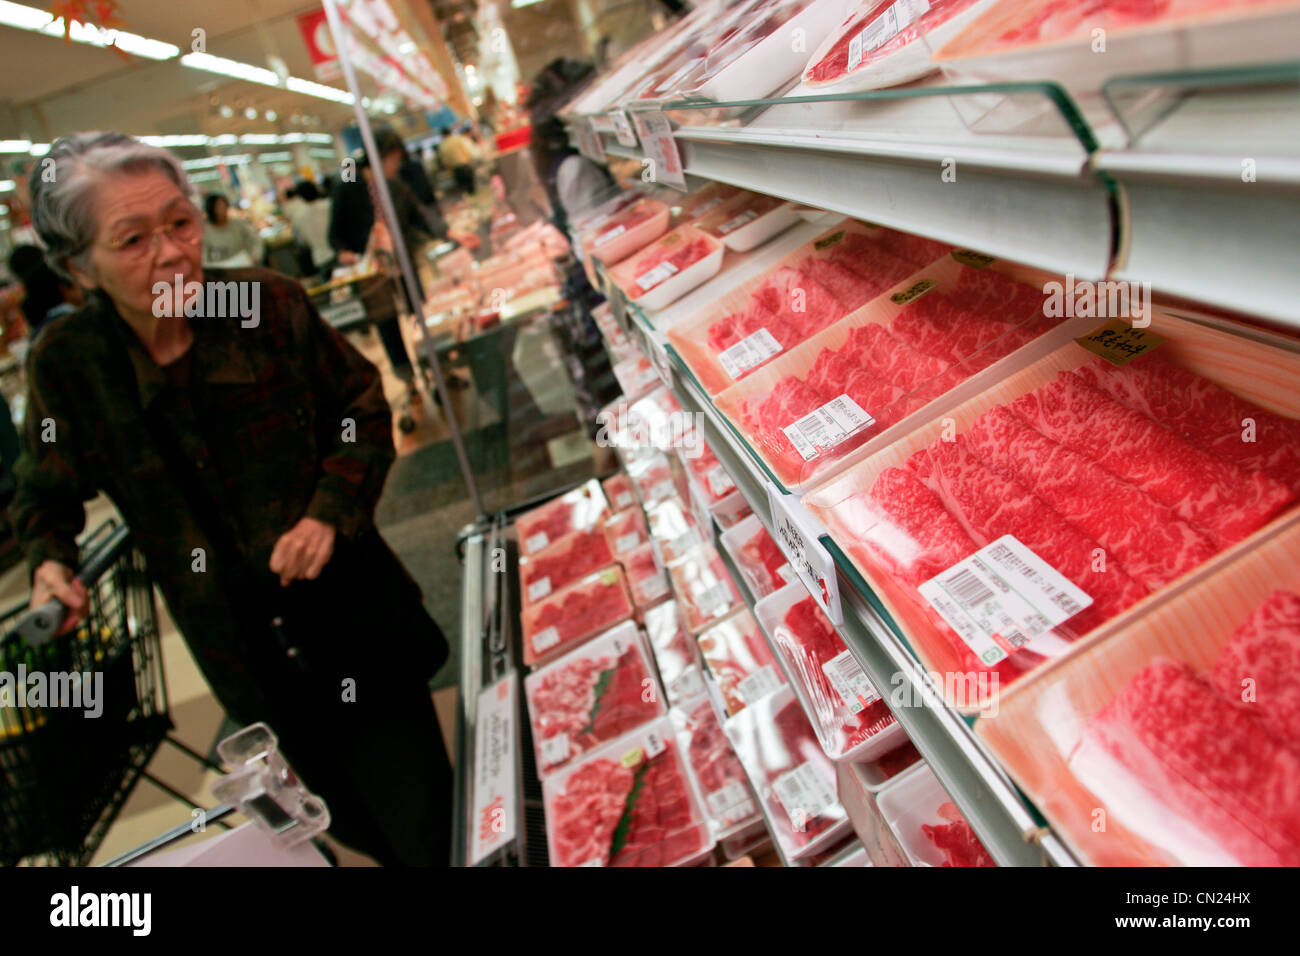 An elderly customer looks at packages of Wagyu beef at a branch of Uny Supermarket in Nagoya, Japan. Wagyu is also - Stock Image